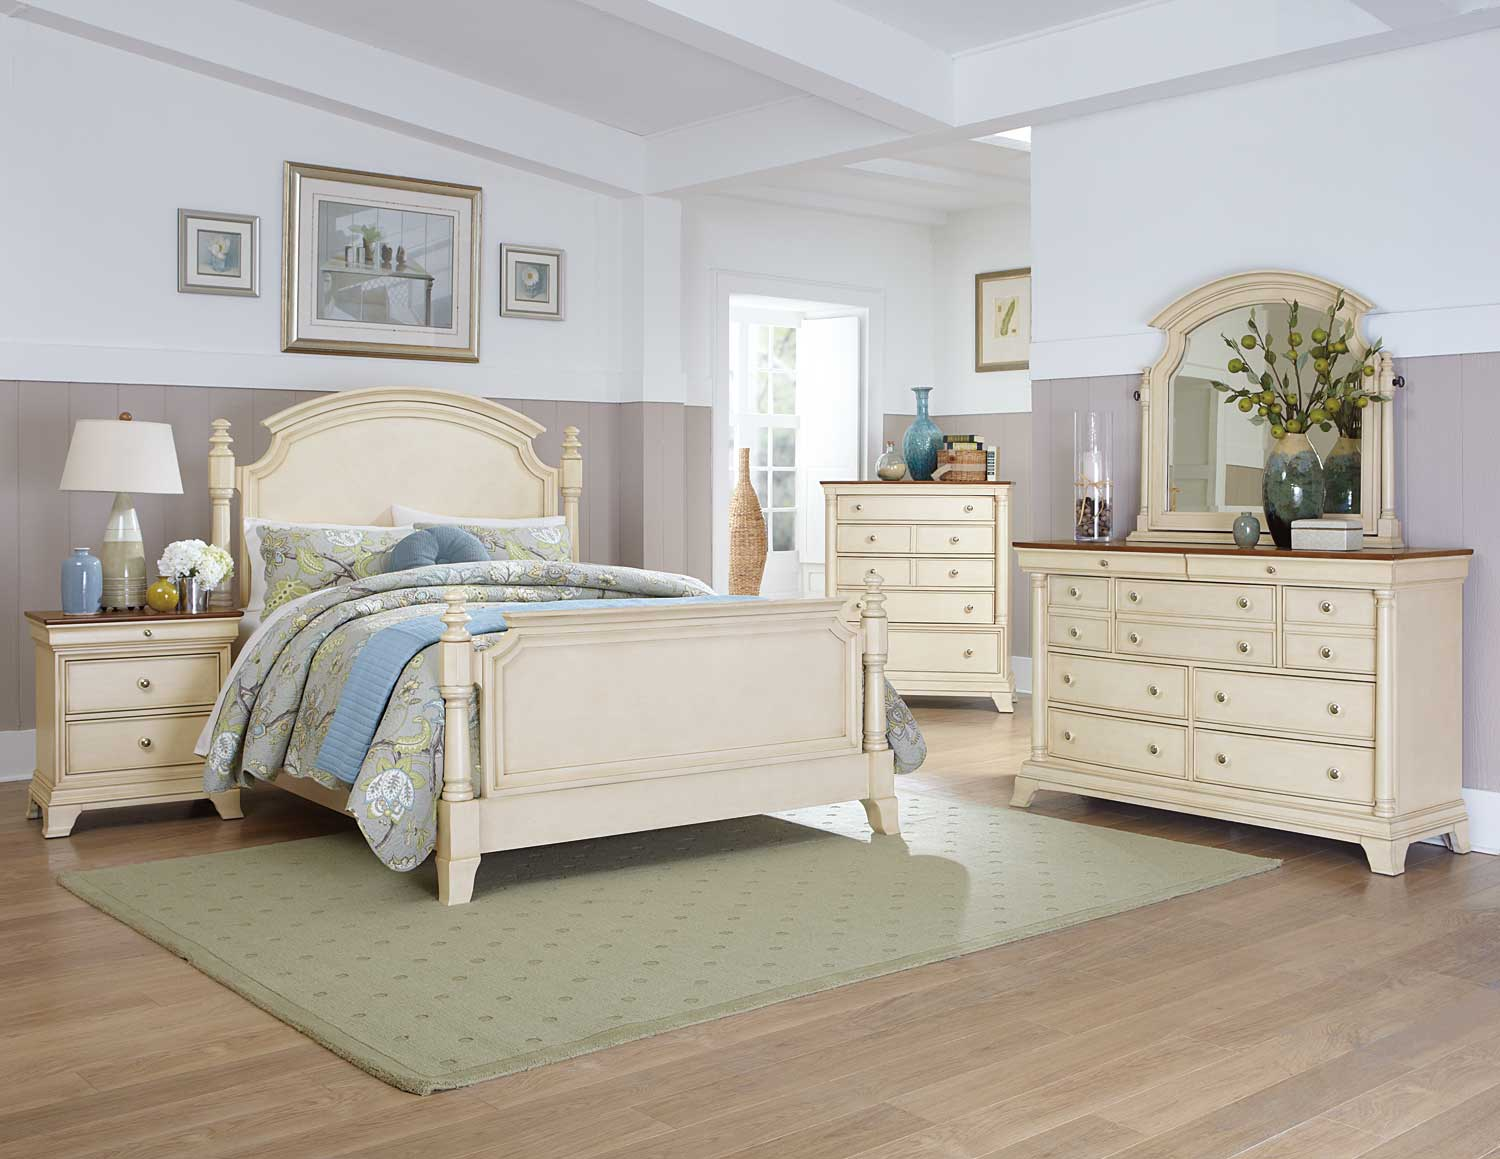 Homelegance inglewood ii bedroom set white b1402w bed set at Cream wooden furniture